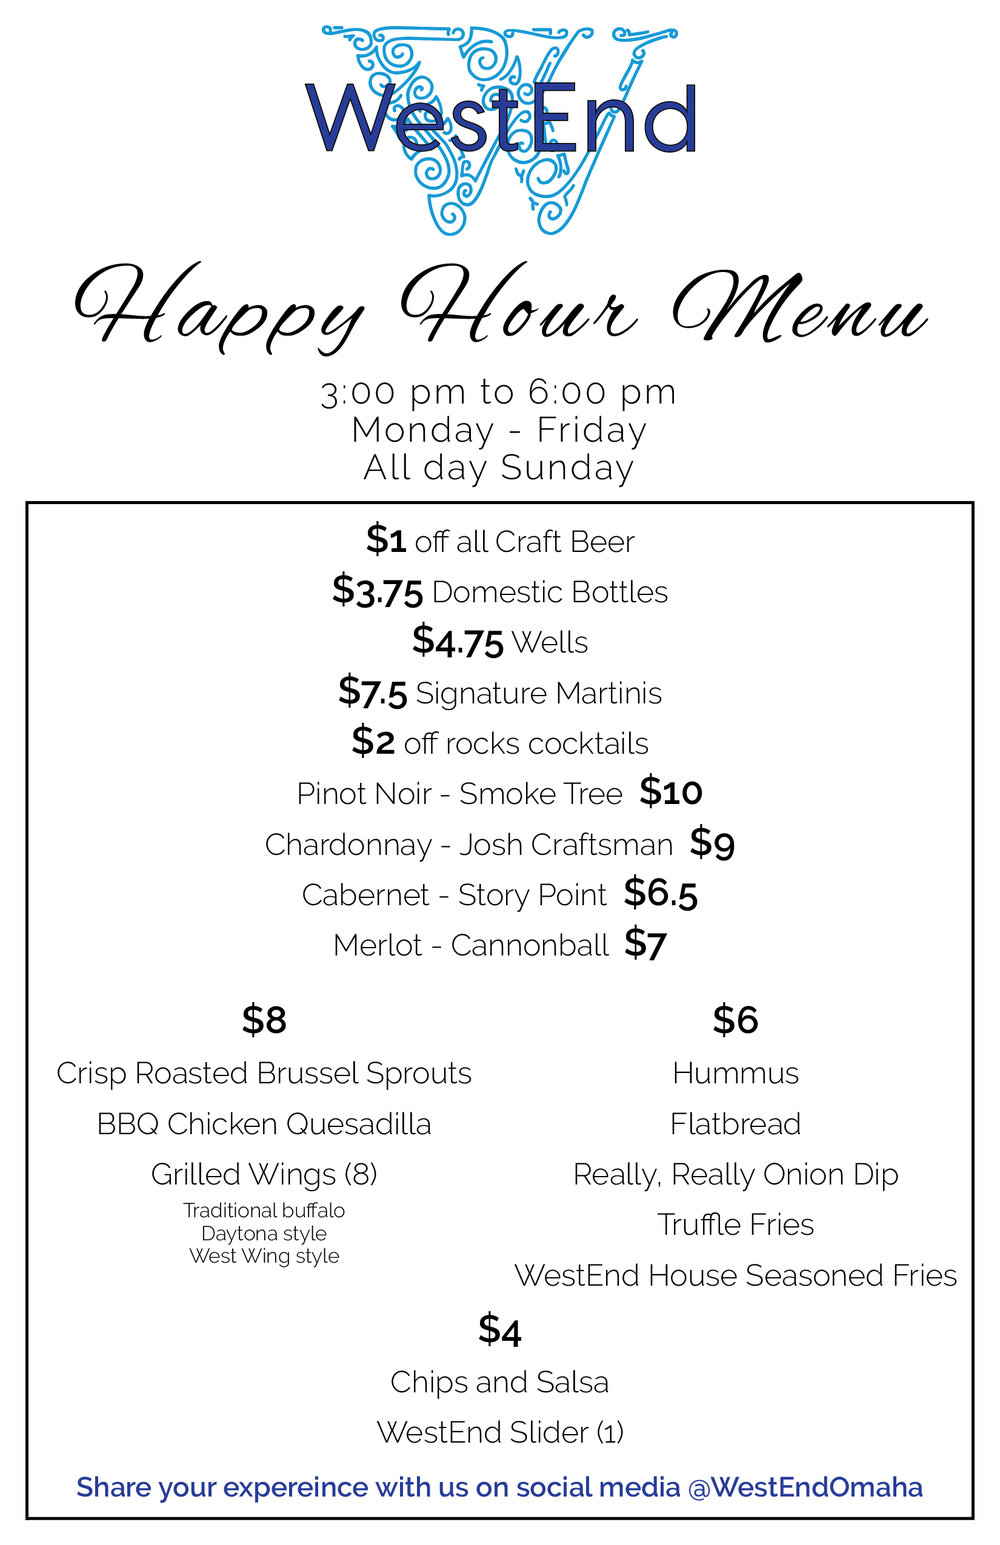 WestEnd Bar Happy Hour Menu